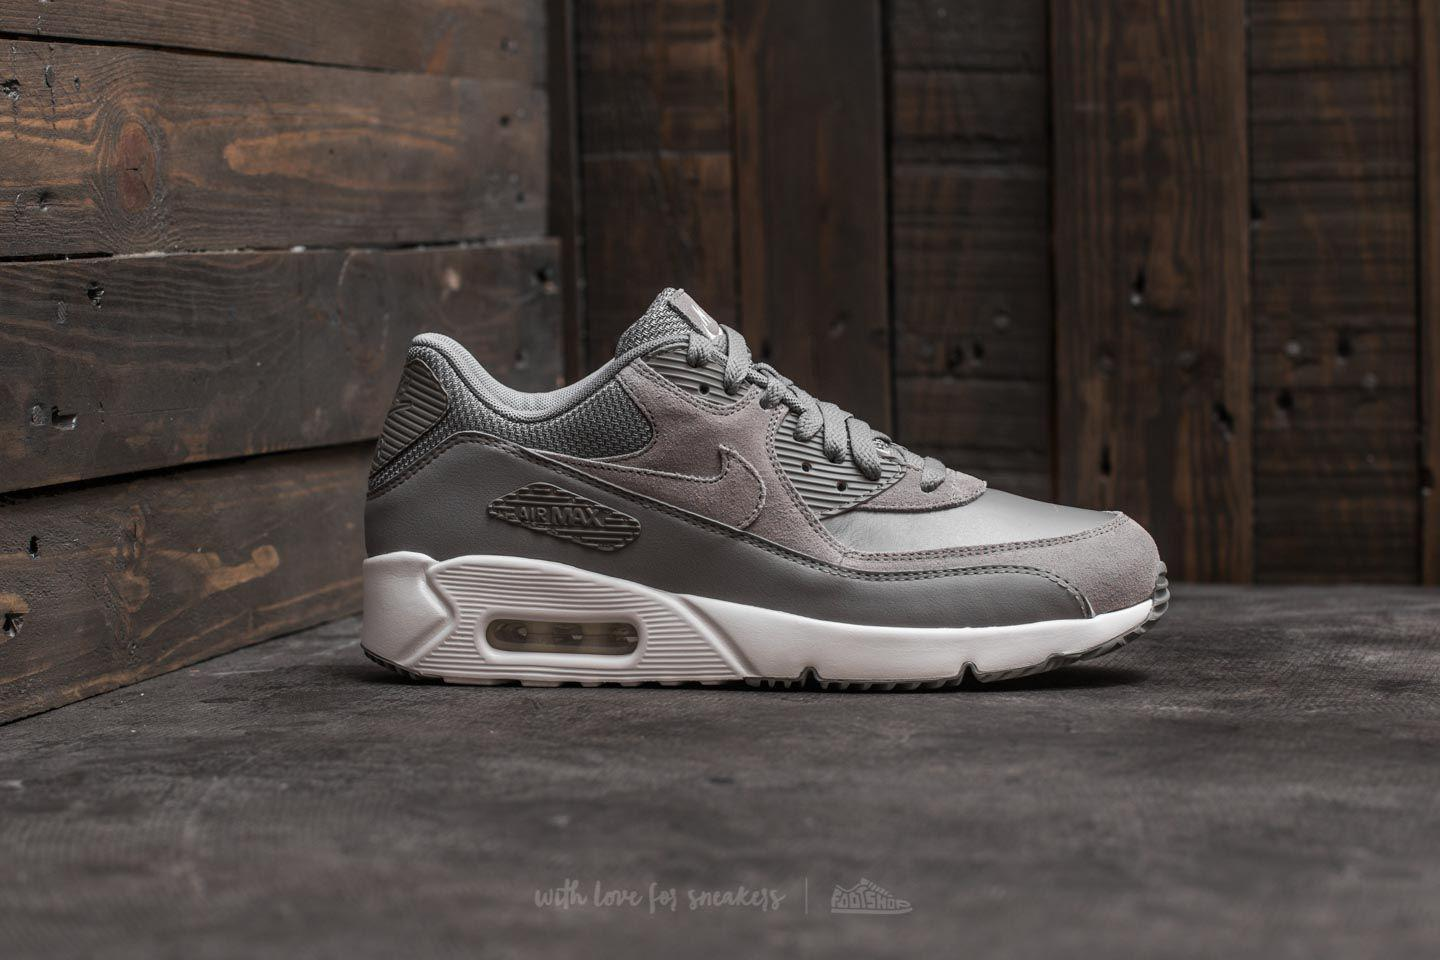 separation shoes b9d35 8571a Nike Air Max 90 Ultra 2.0 Leather Dust  Dust-summit White - Lyst